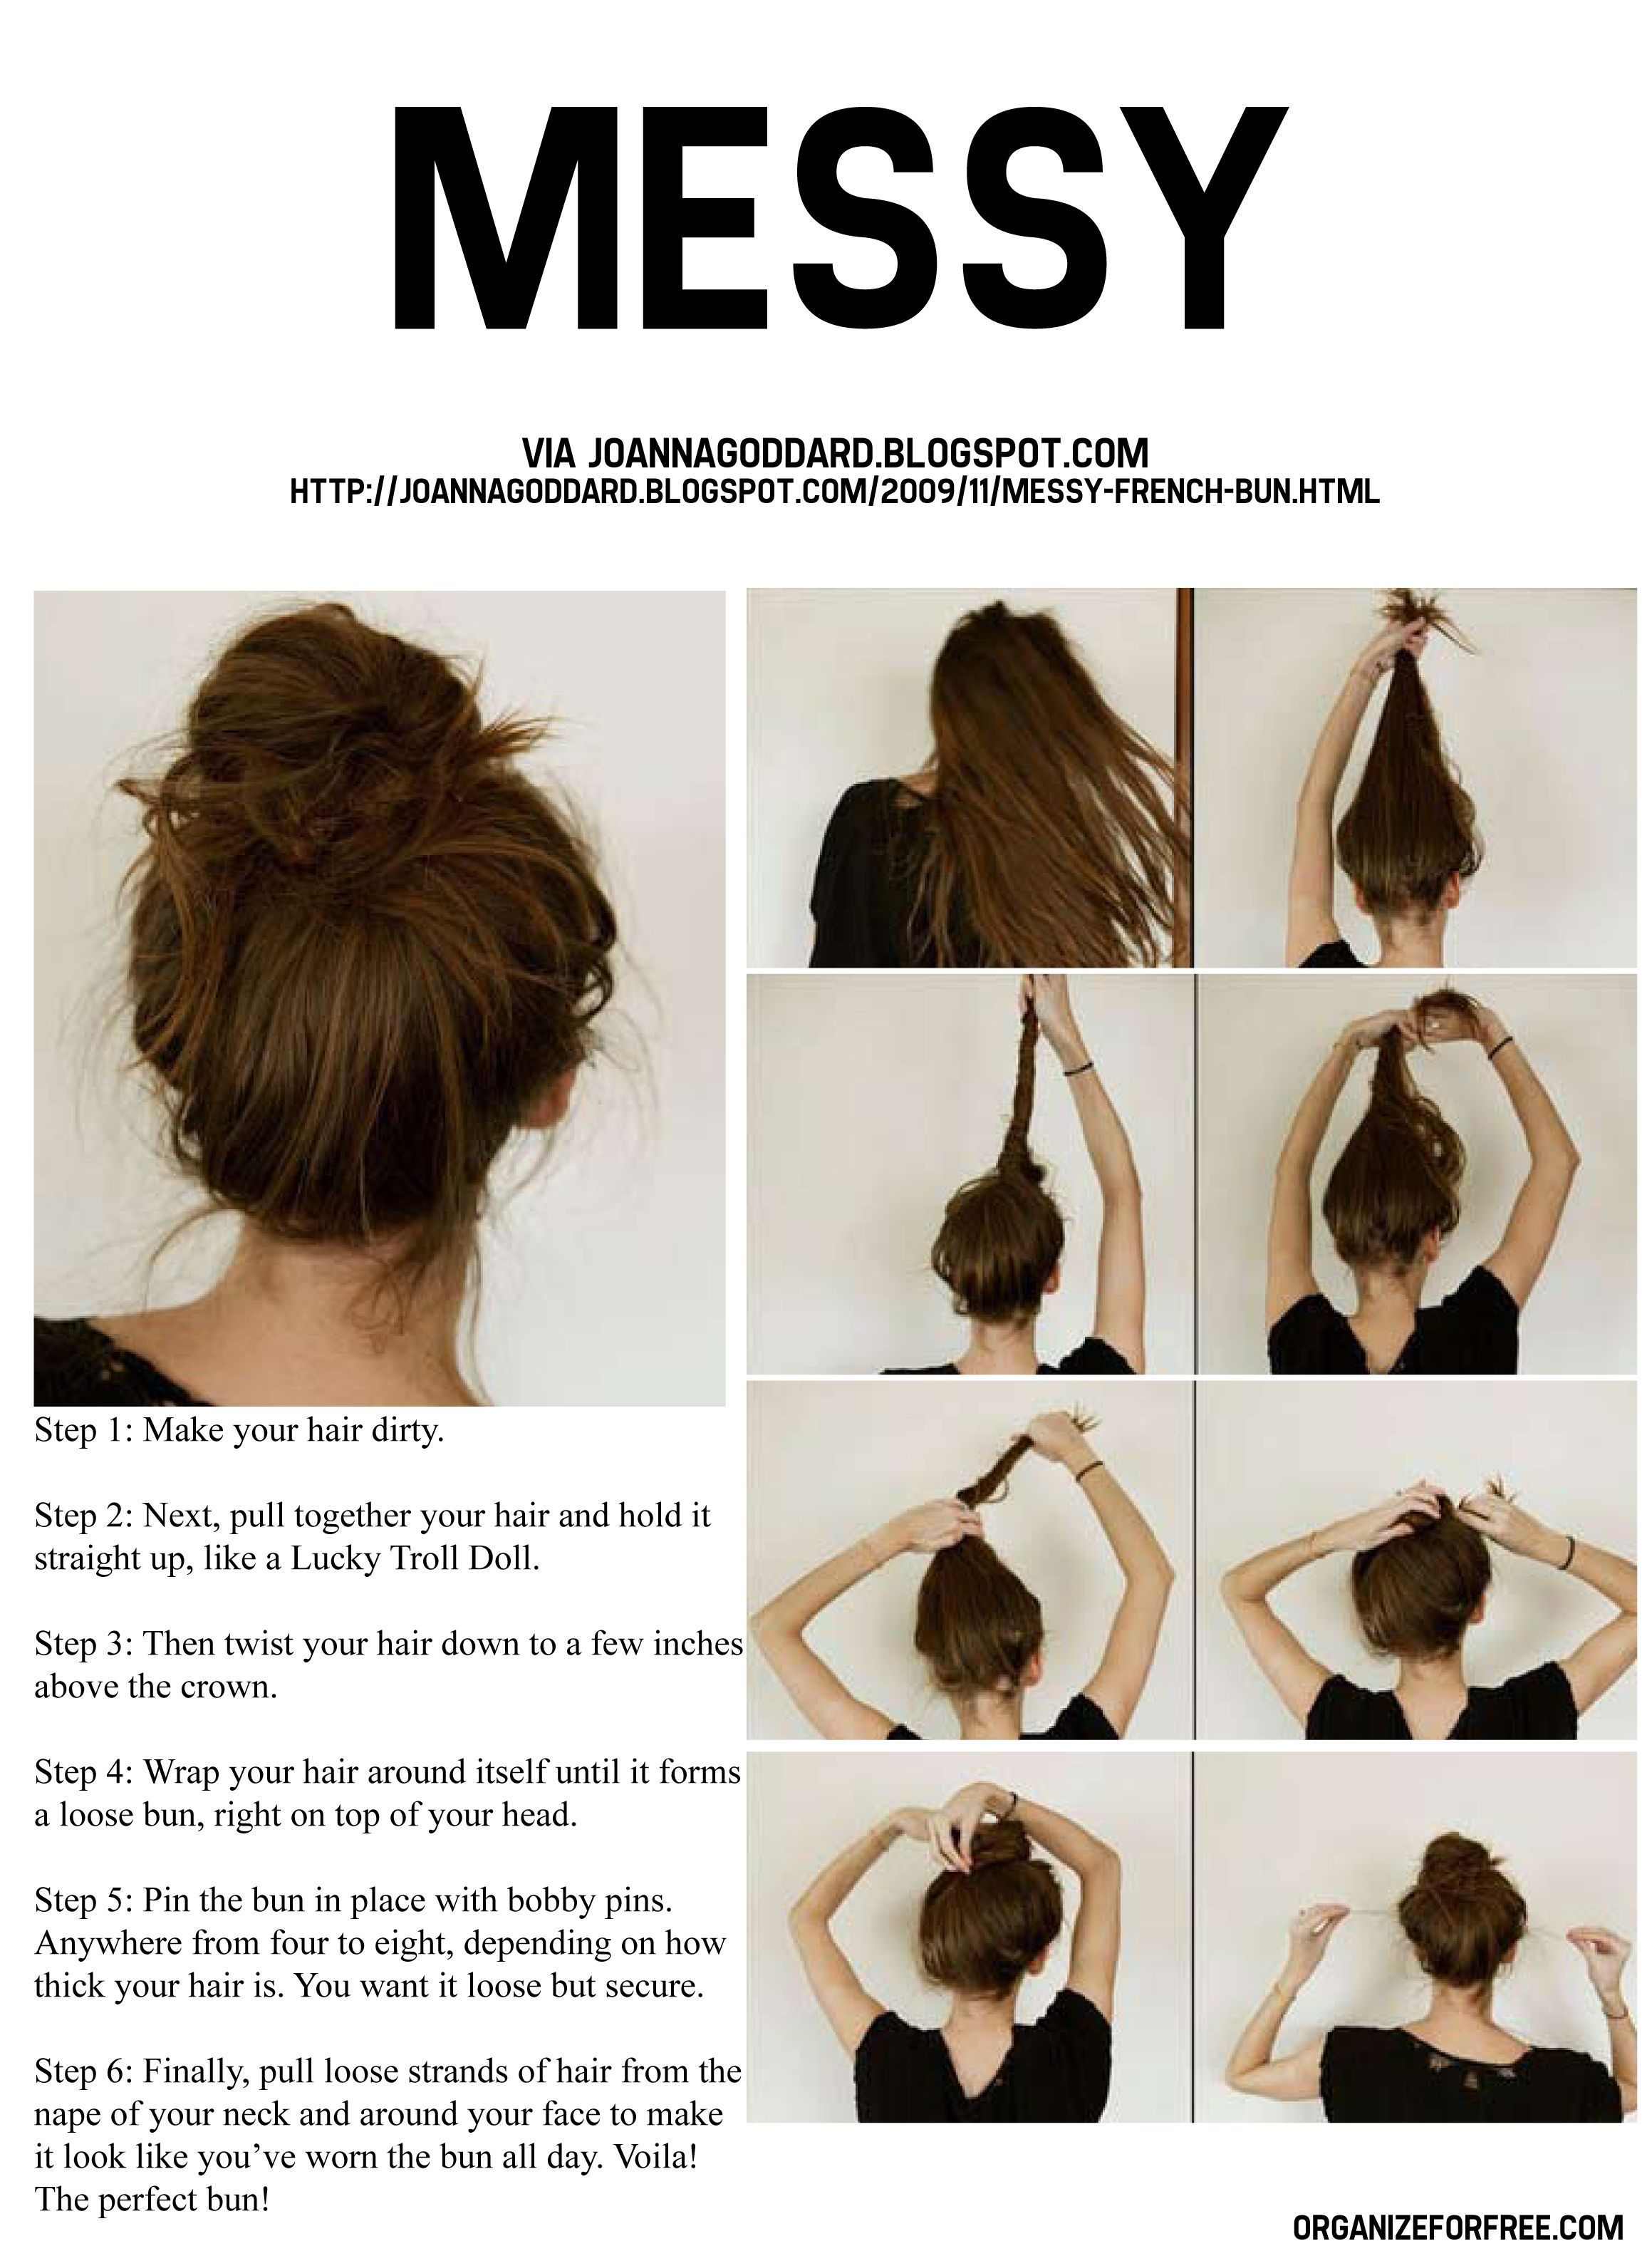 Easy Hairstyles Quick Lazy Girl Messy Buns Hairstyles Easy Quick Lazy Hair Hair Styles Easy Hairstyles For Long Hair Hair Beauty